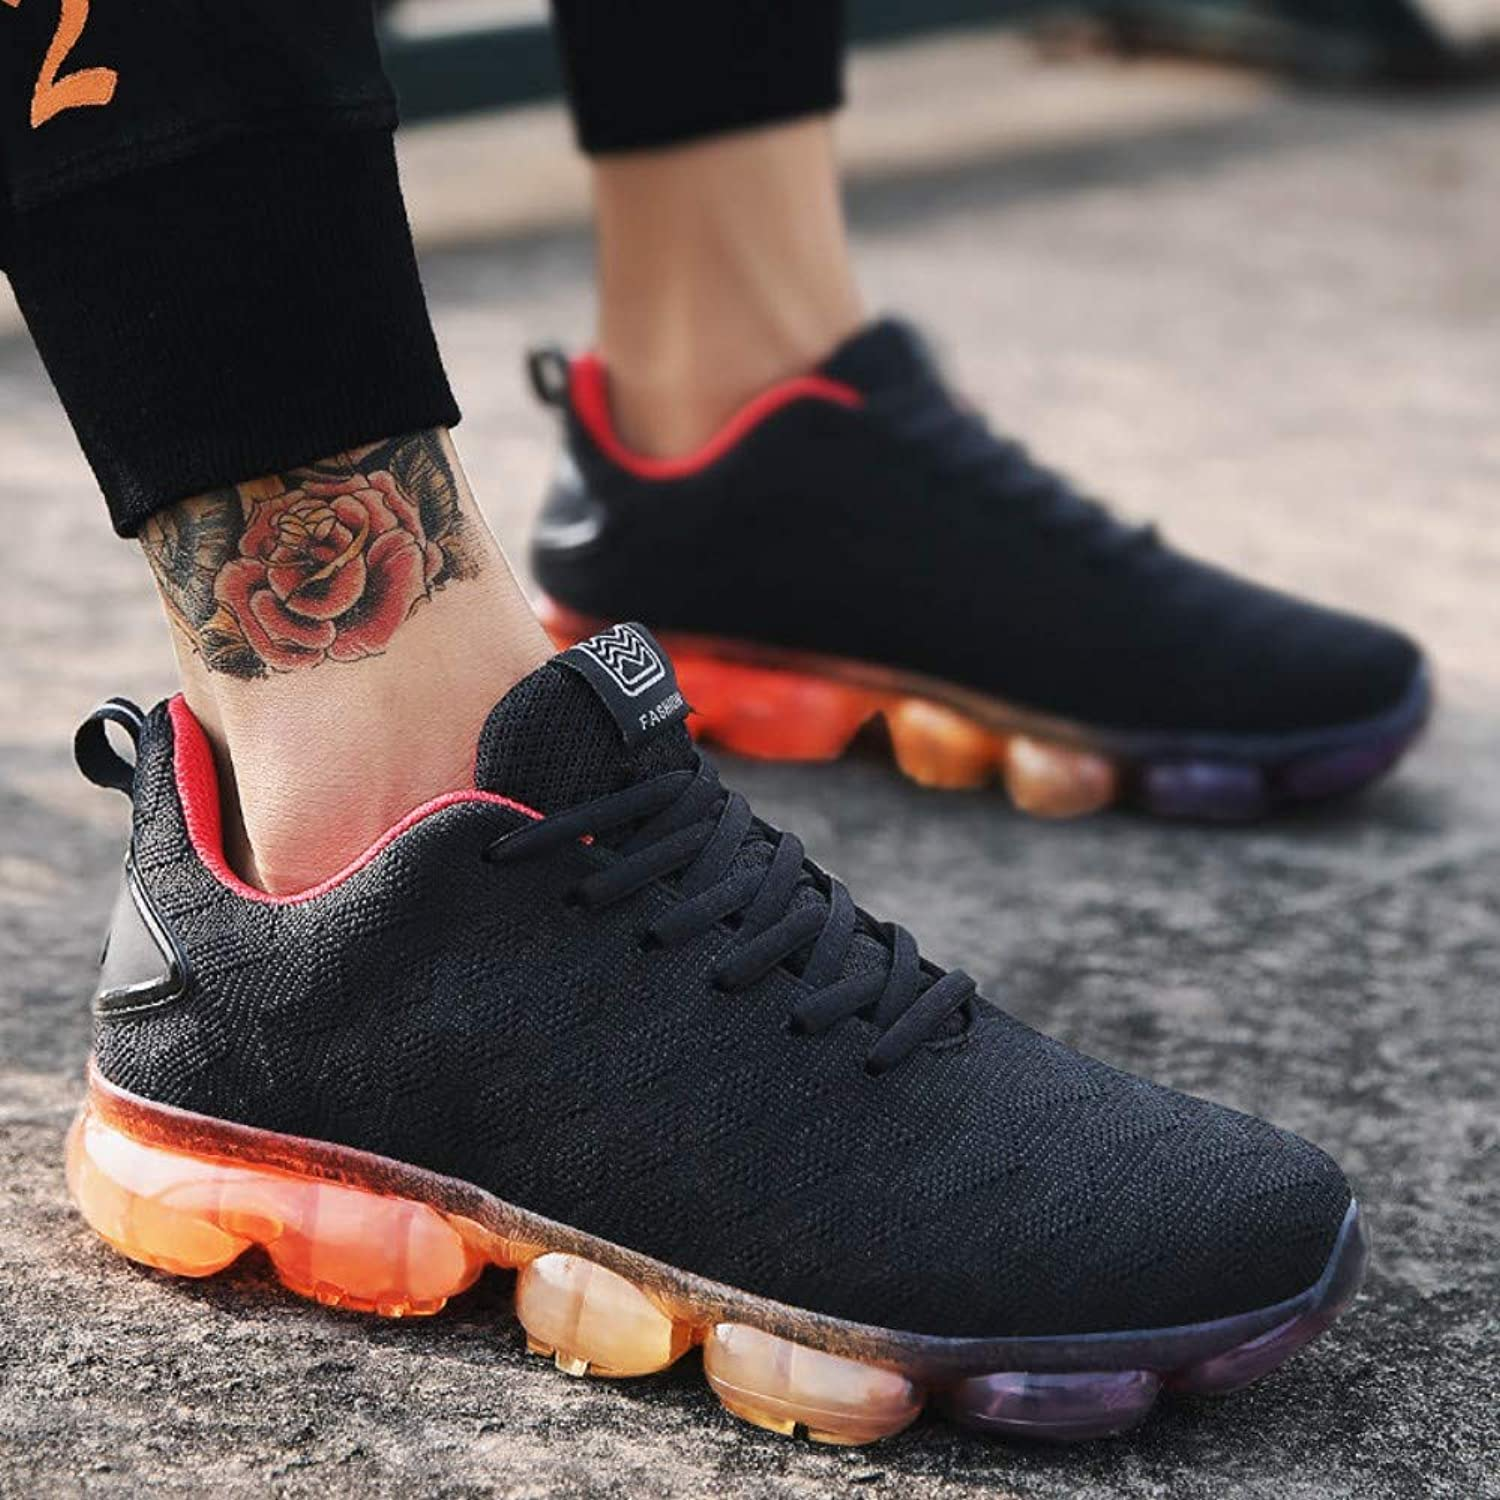 YAYADI Sneakers Running shoes For Men Sports Outdoor Walking Jogging Sneakers Autumn Life Sneakers Fitness shoes